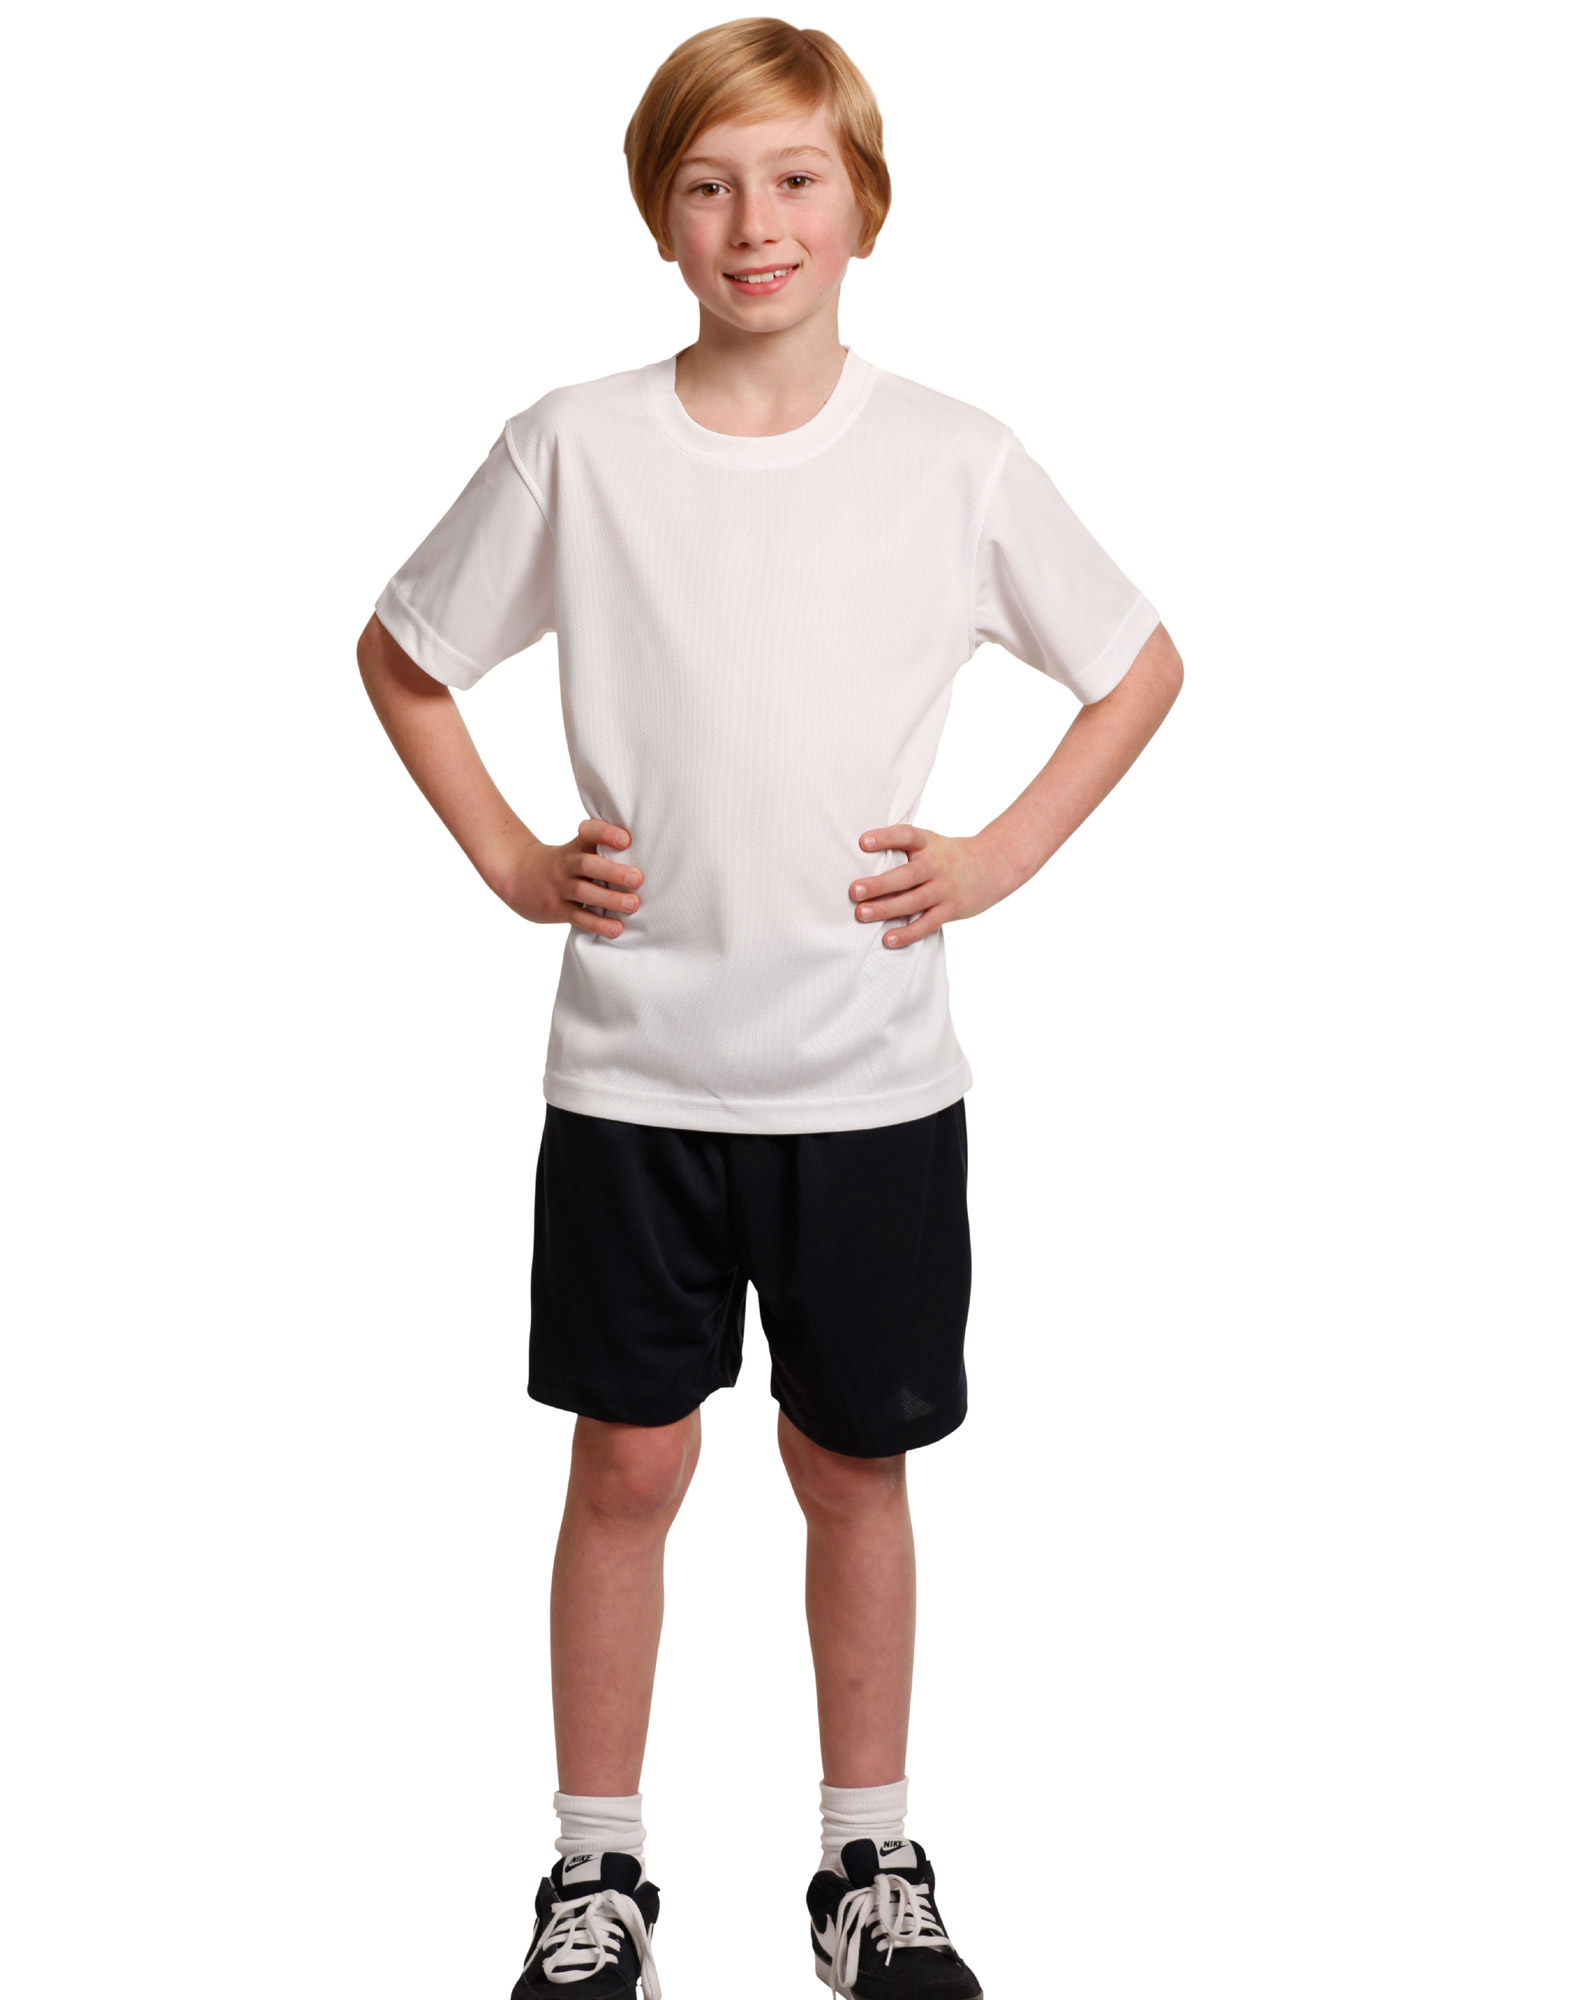 Shop Kids' Shorts at Champs Sports. Browse our huge selection of Kids' shorts, with a wide variety of sizes, styles, and colors available. Free Shipping on select products.